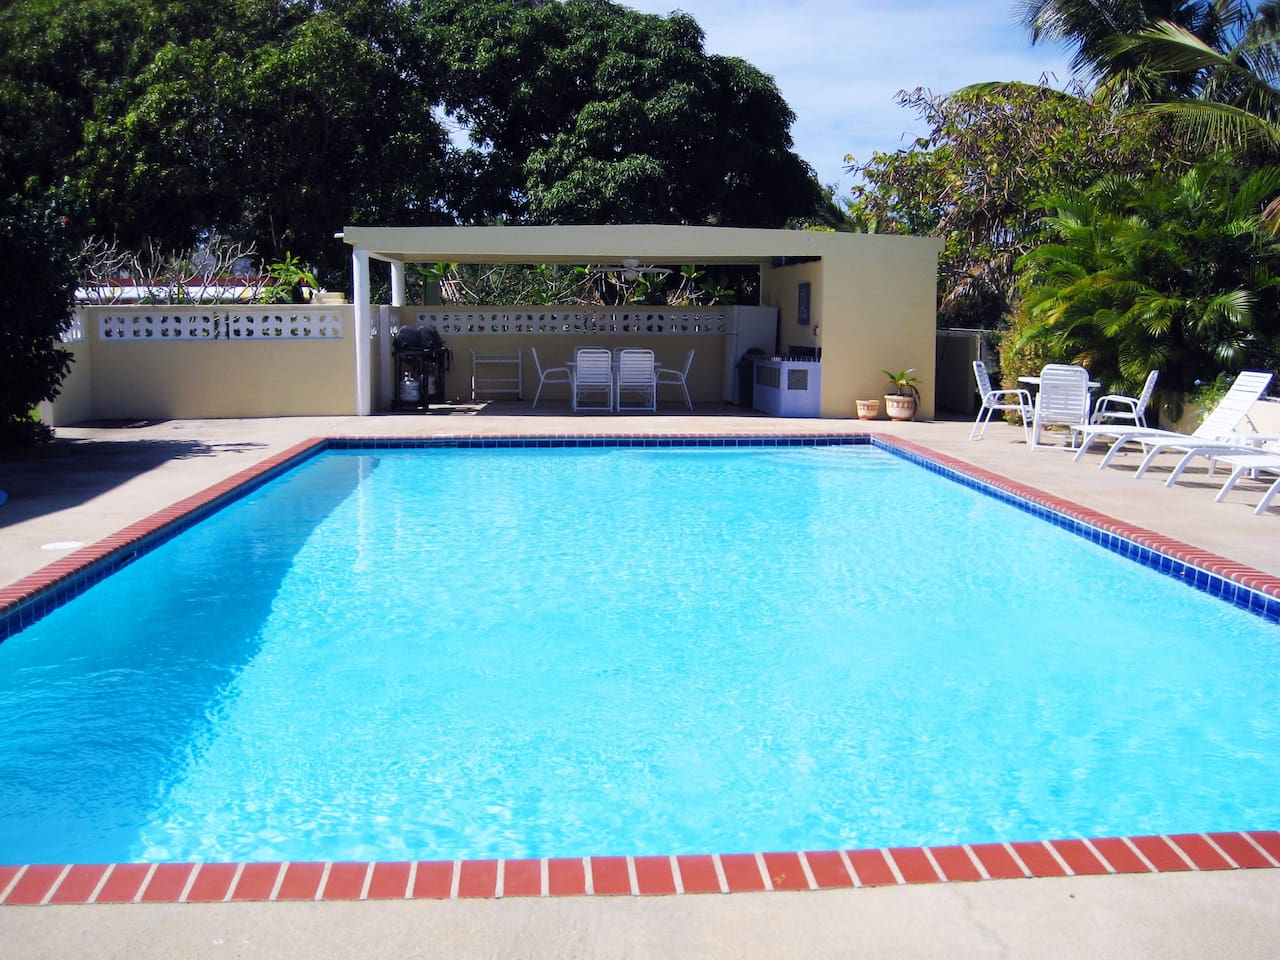 Casa Ladera in Vieques: our beautiful 20x40-foot pool